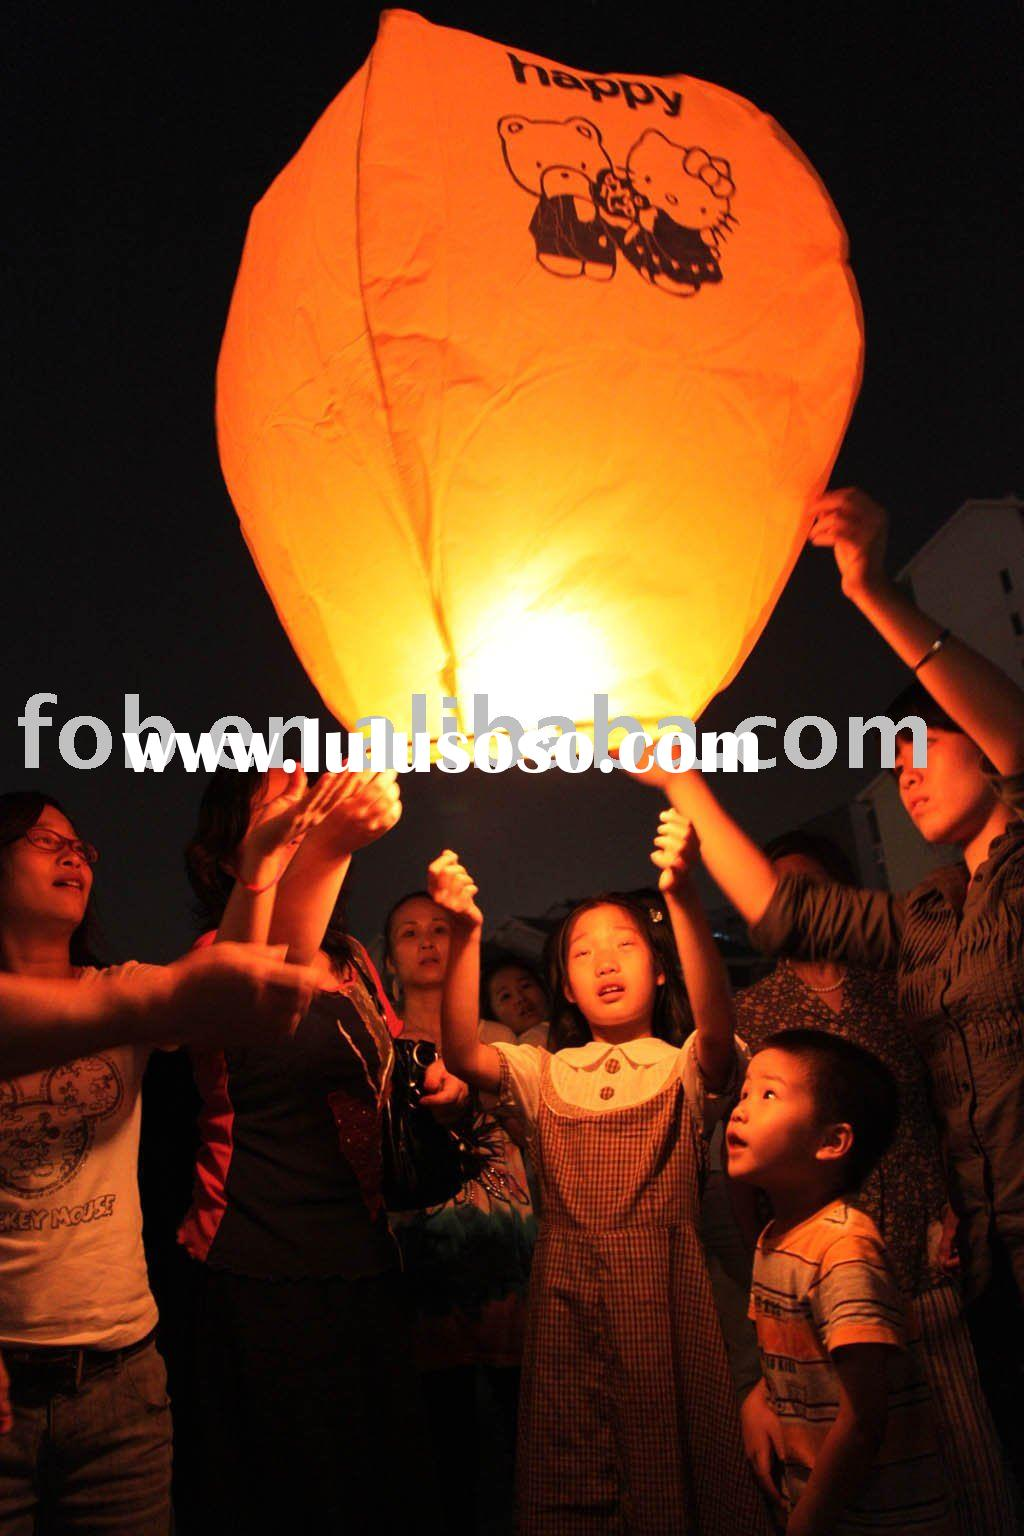 http://www.lulusoso.com/upload/20110611/flying_lanterns_sky_lanterns_fire_balloon_for.jpg